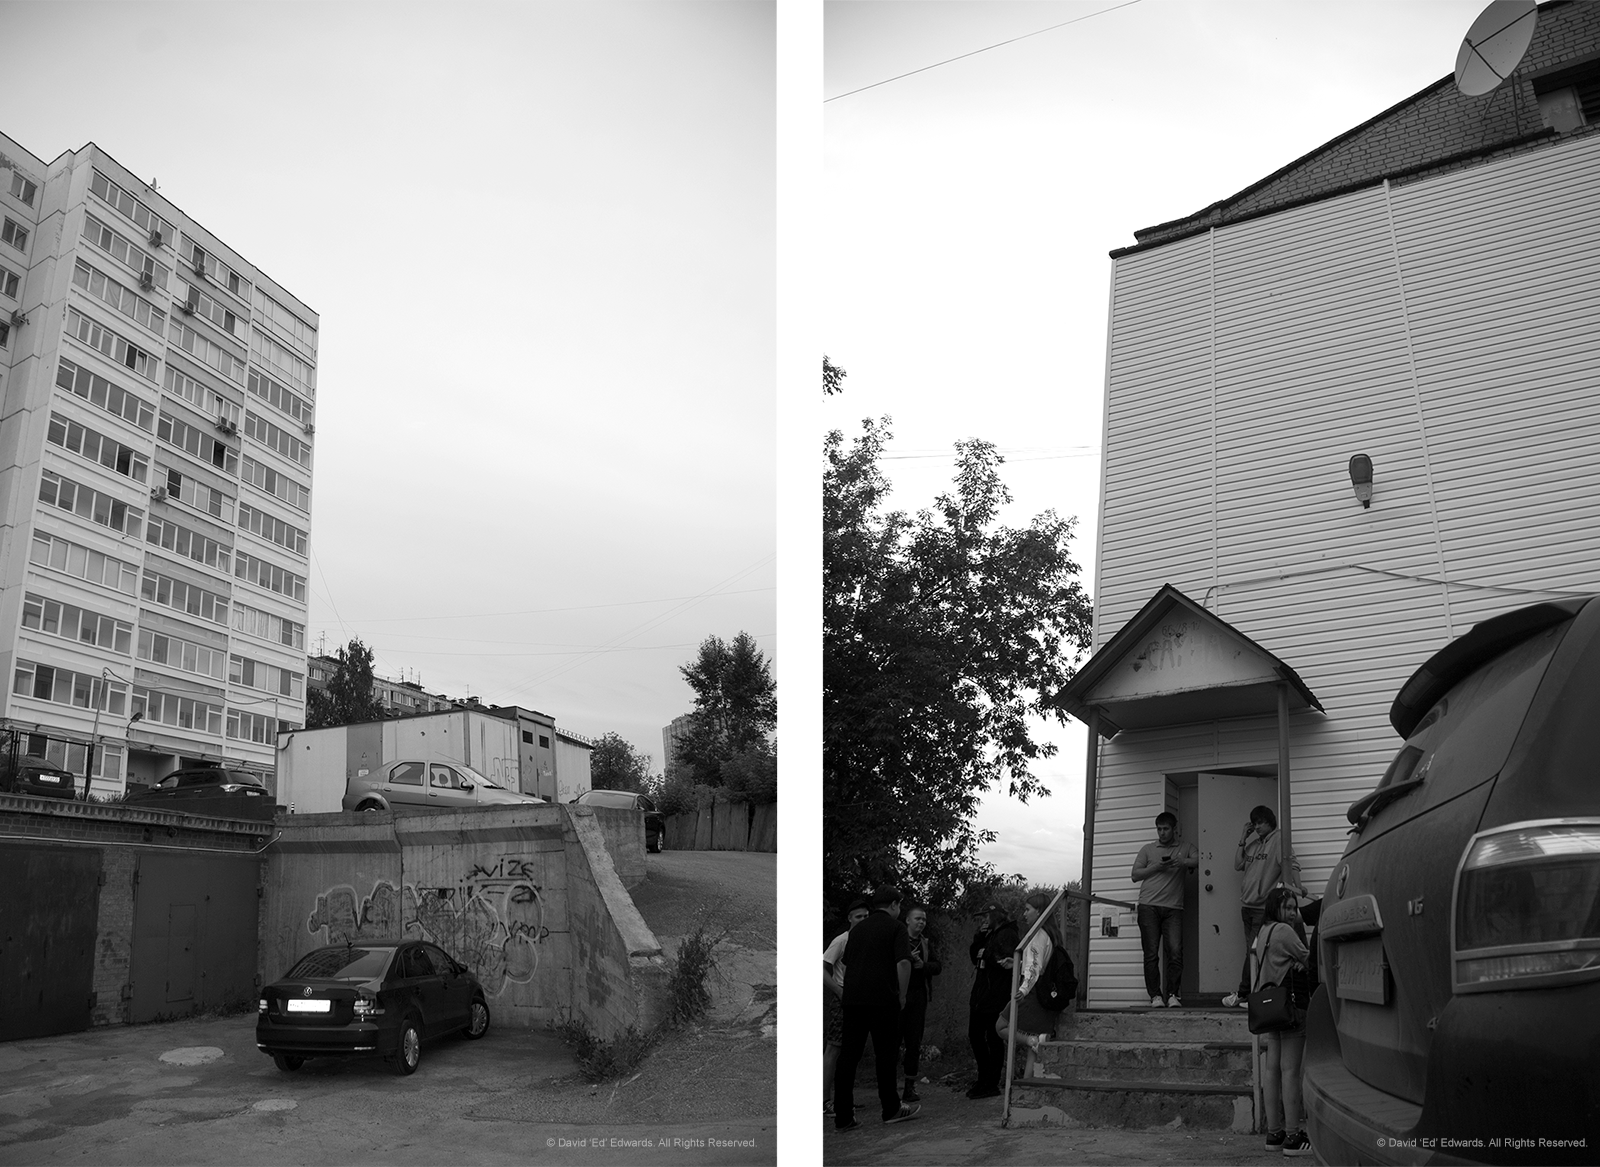 Krupskaya's venue in Perm. There's a reason why I'm not showing the bathroom.